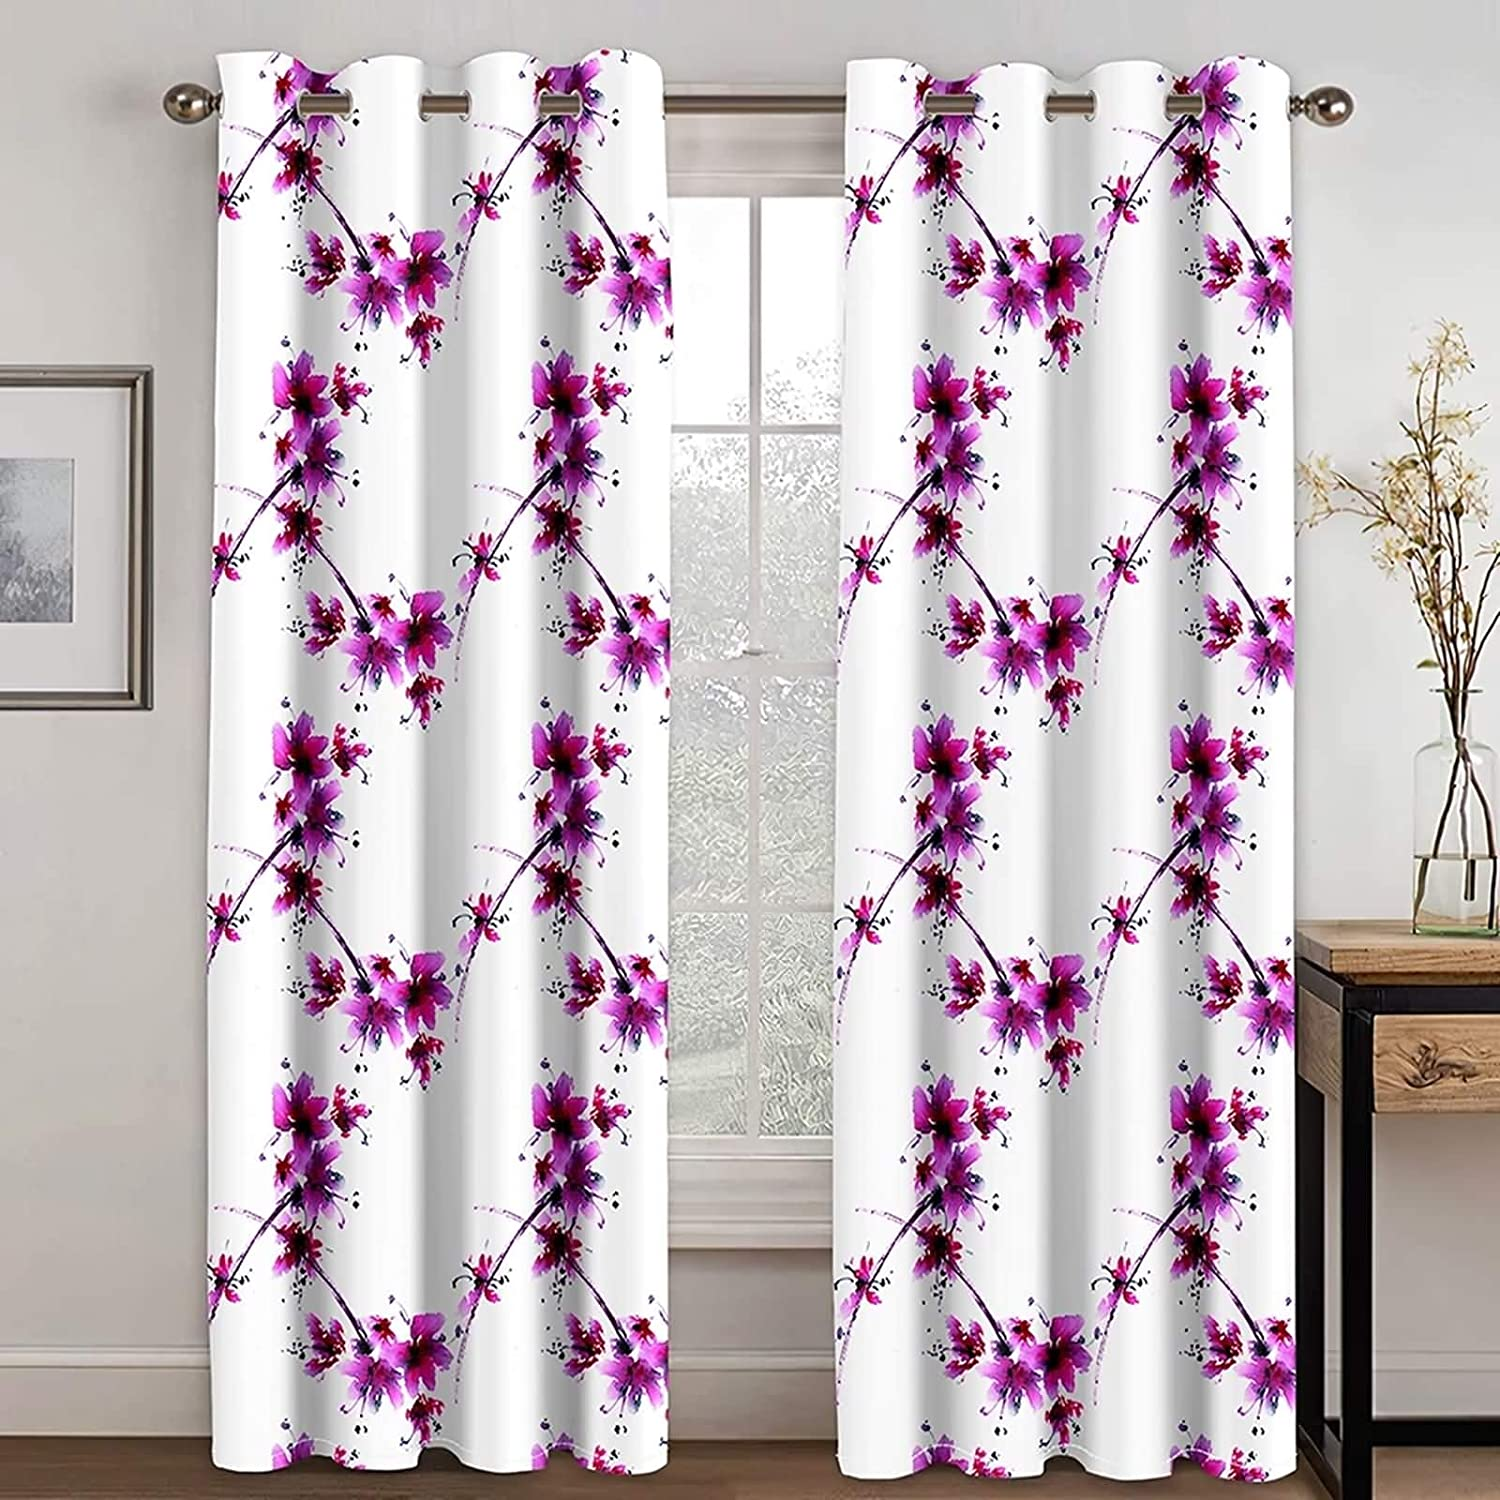 Daesar Ranking TOP10 Blackout Drapes 2 Panel Bedroom for Attention brand Flowe Curtain